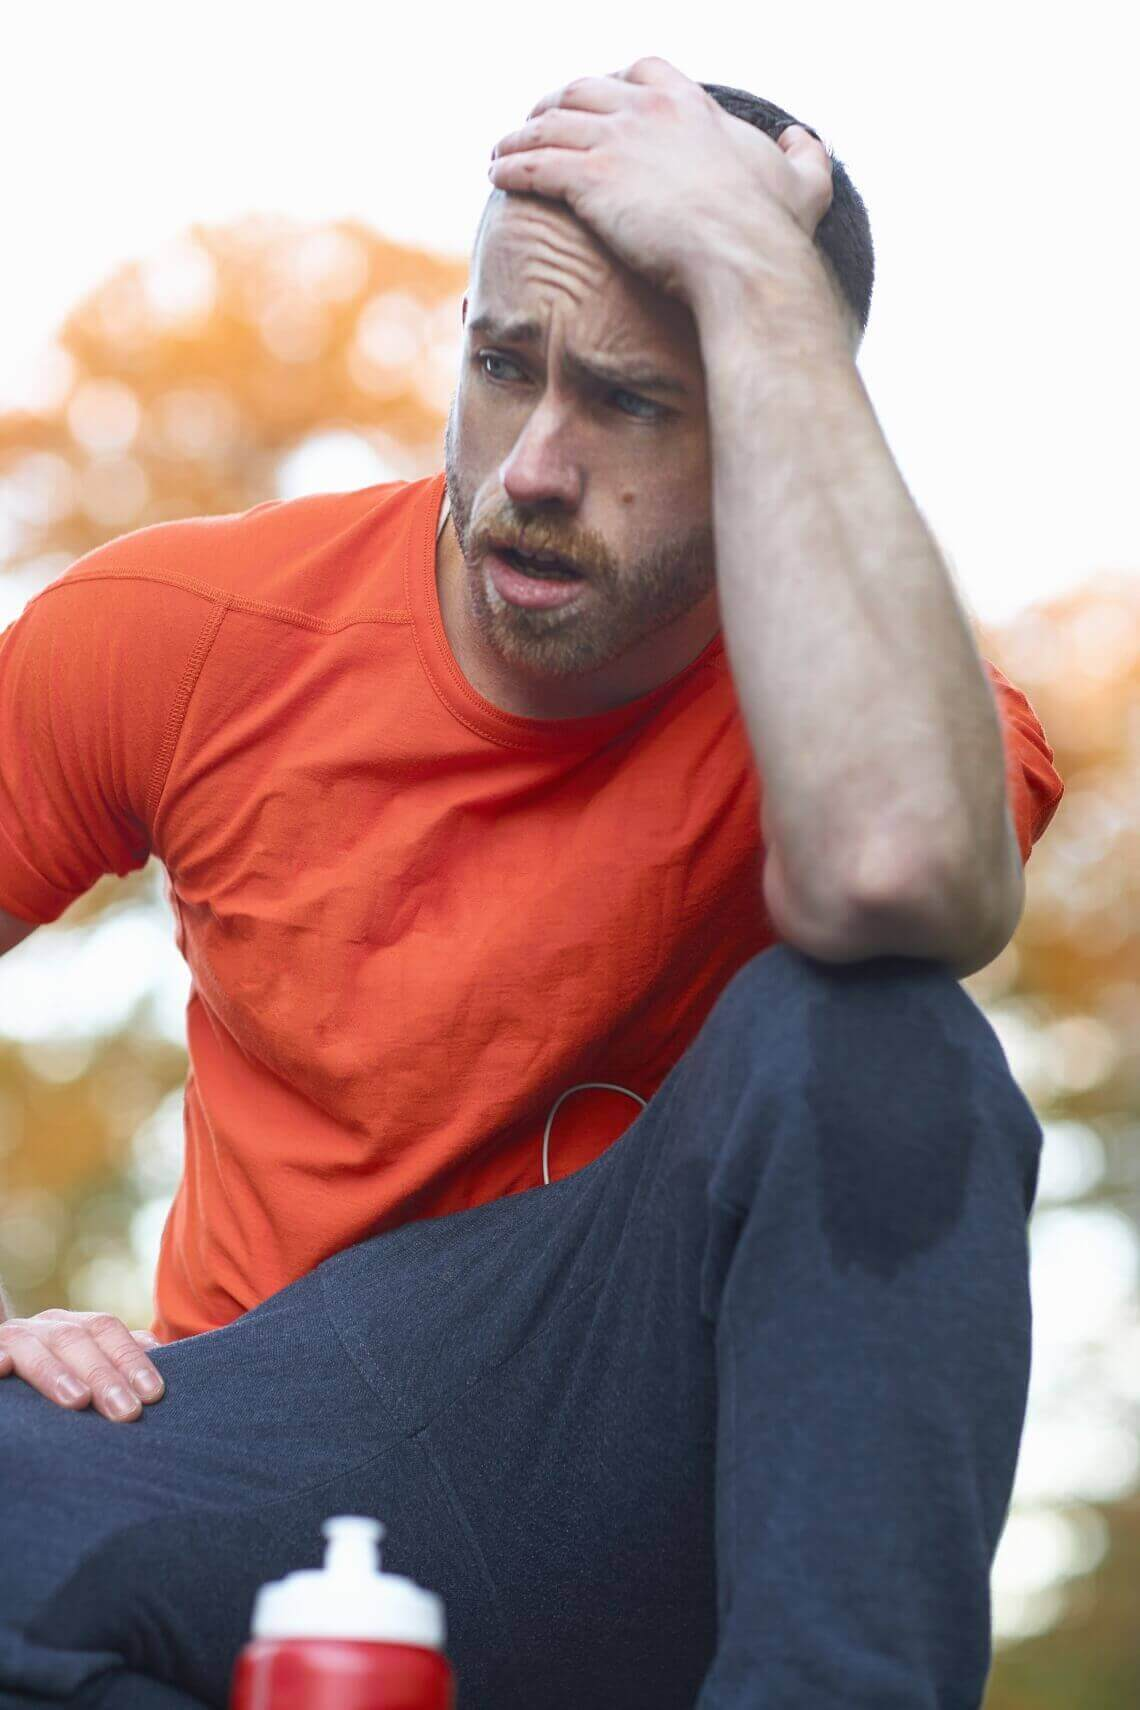 Why Do I Want To Puke When Working Out?